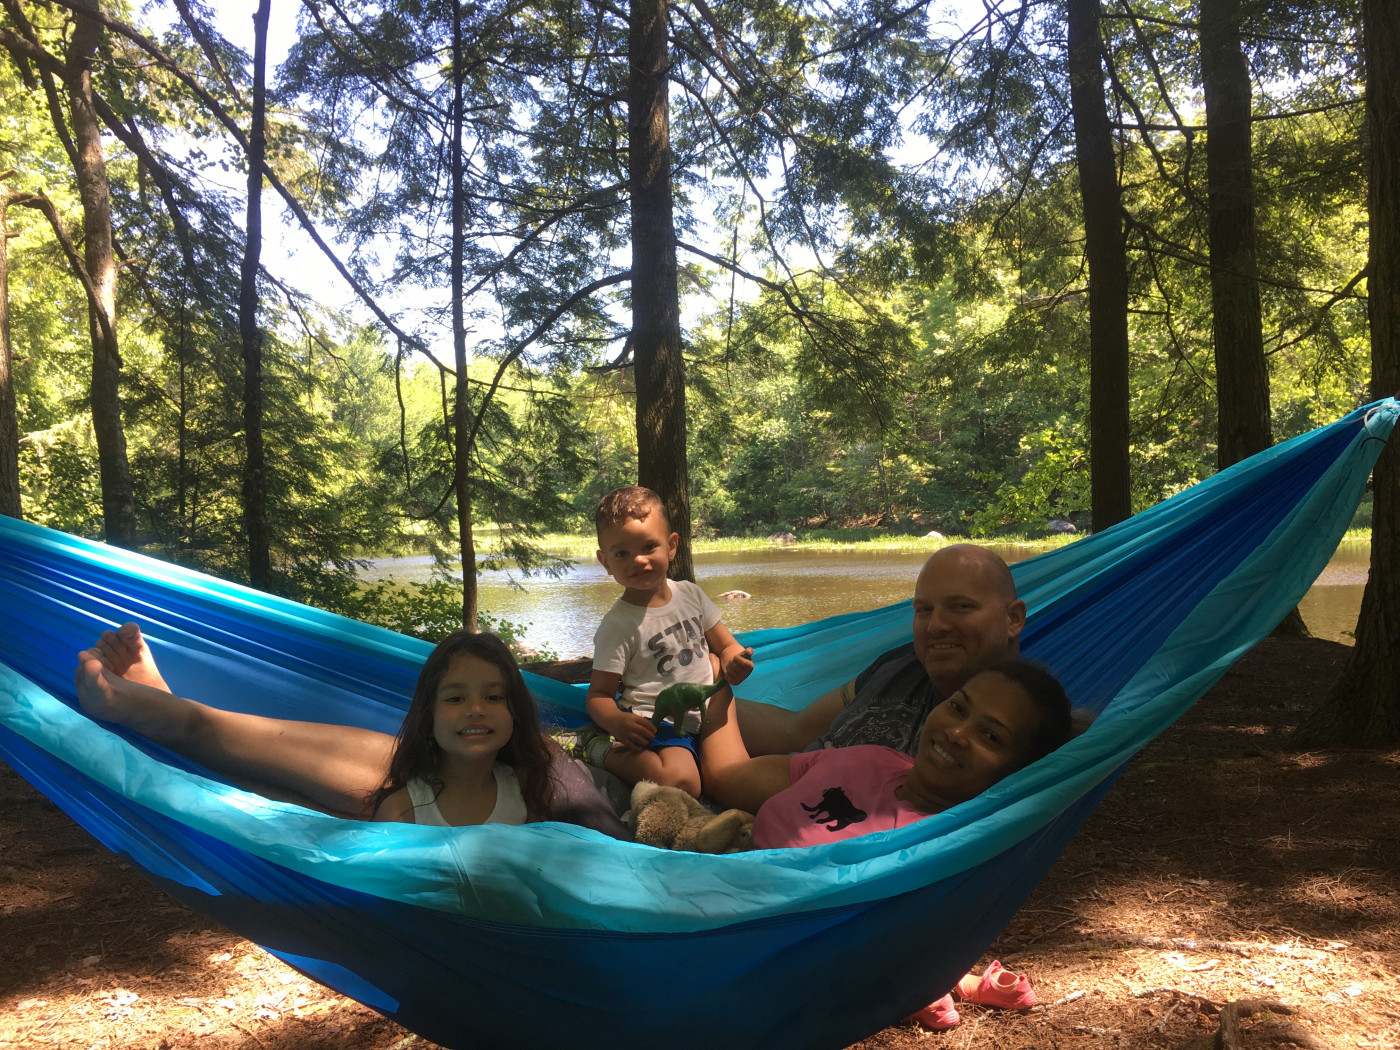 A family of happy campers enjoying Lewey Lake Campground.